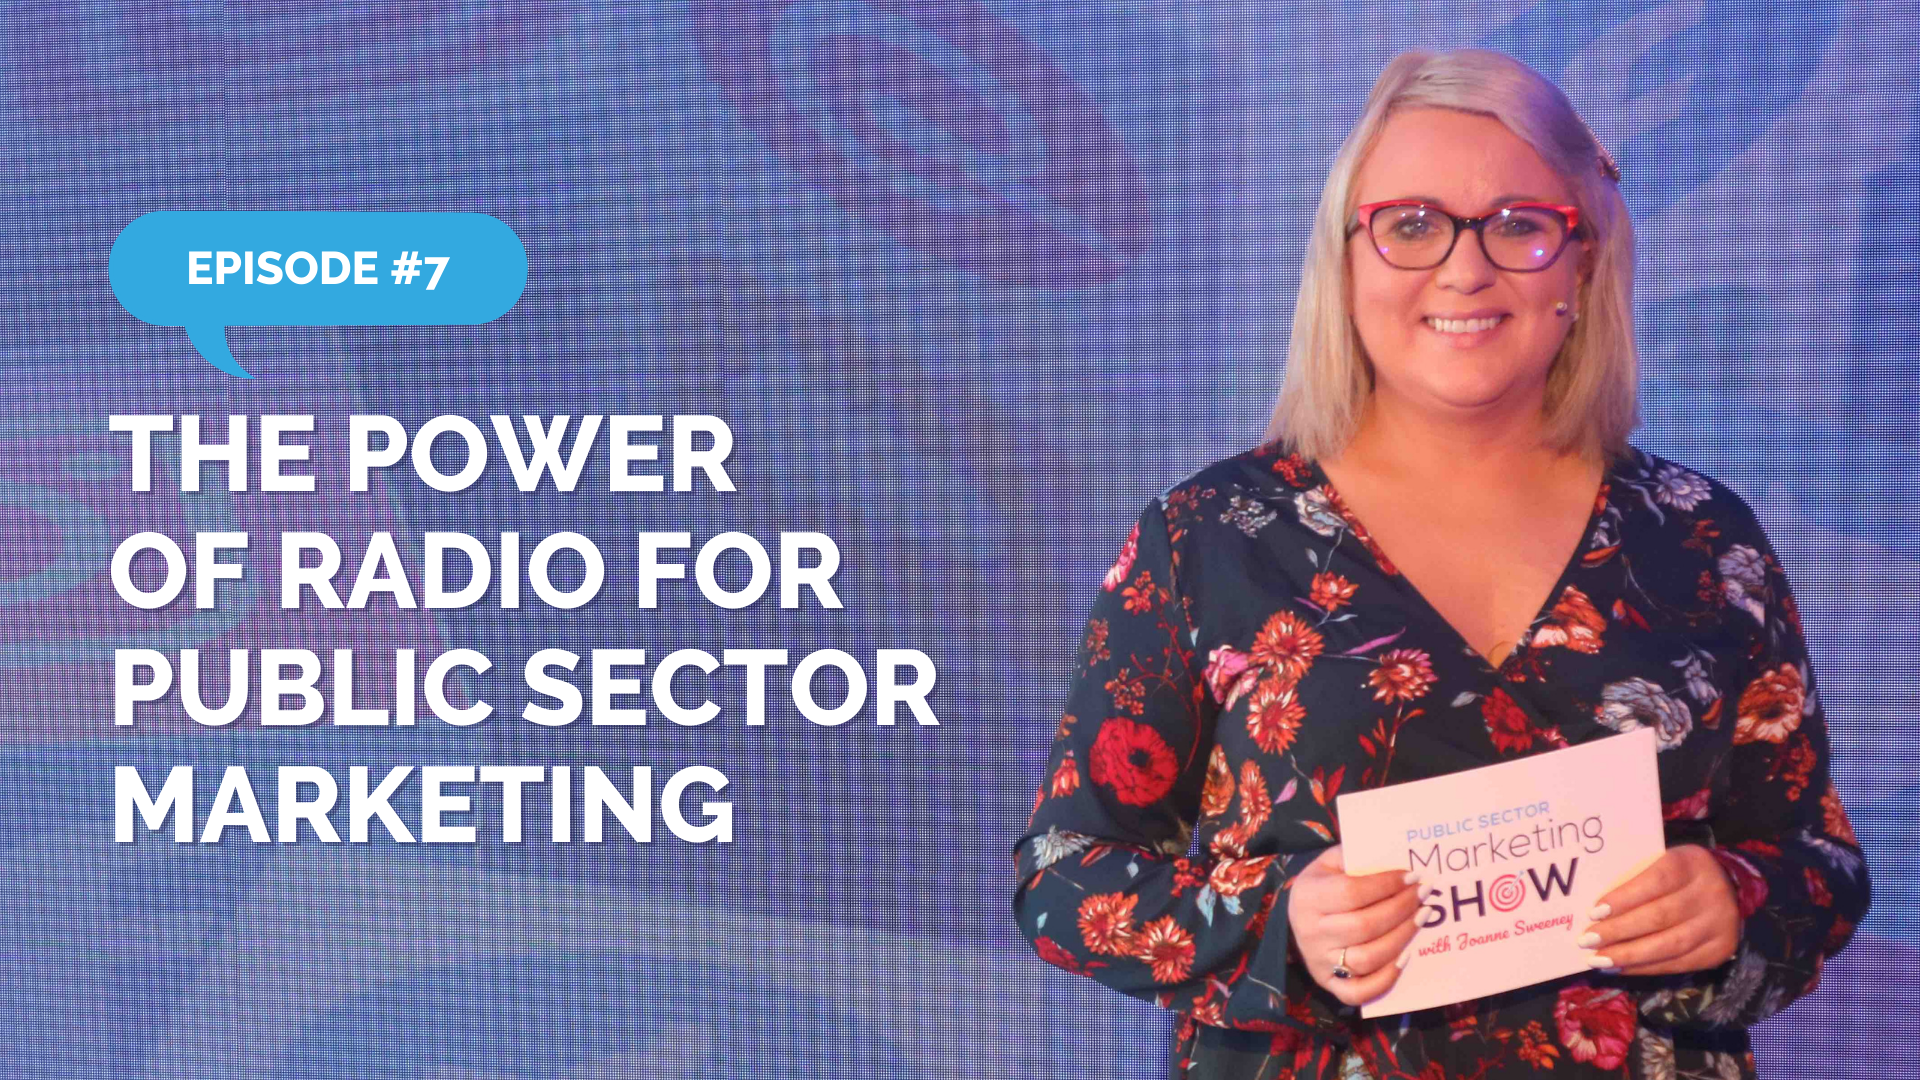 Episode 7 - The Power of Radio for Public Sector Marketing